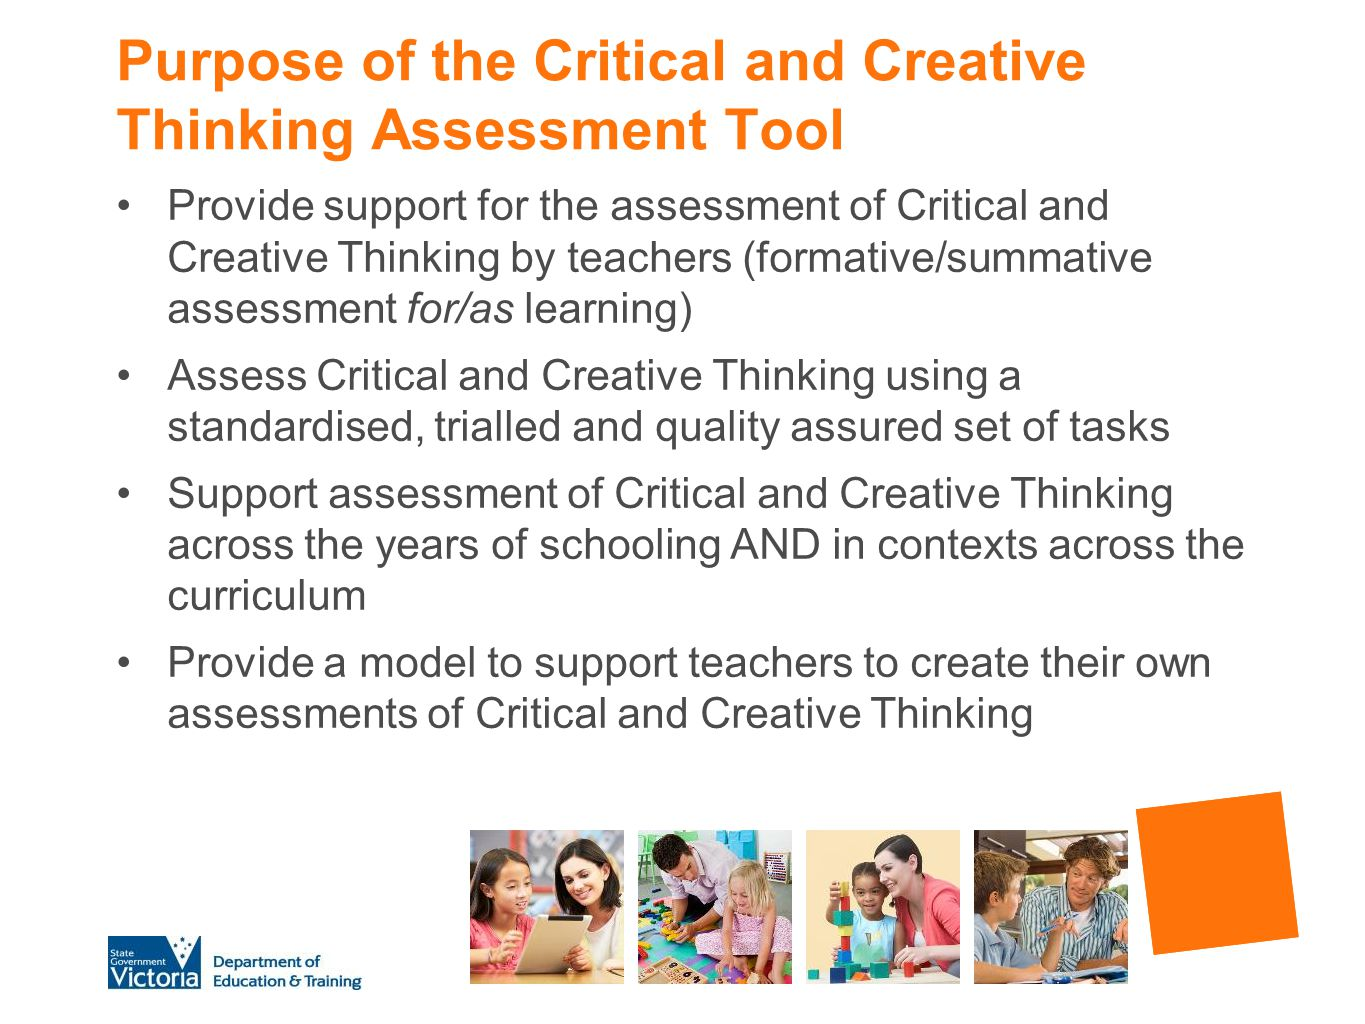 Purpose of the Critical and Creative Thinking Assessment Tool